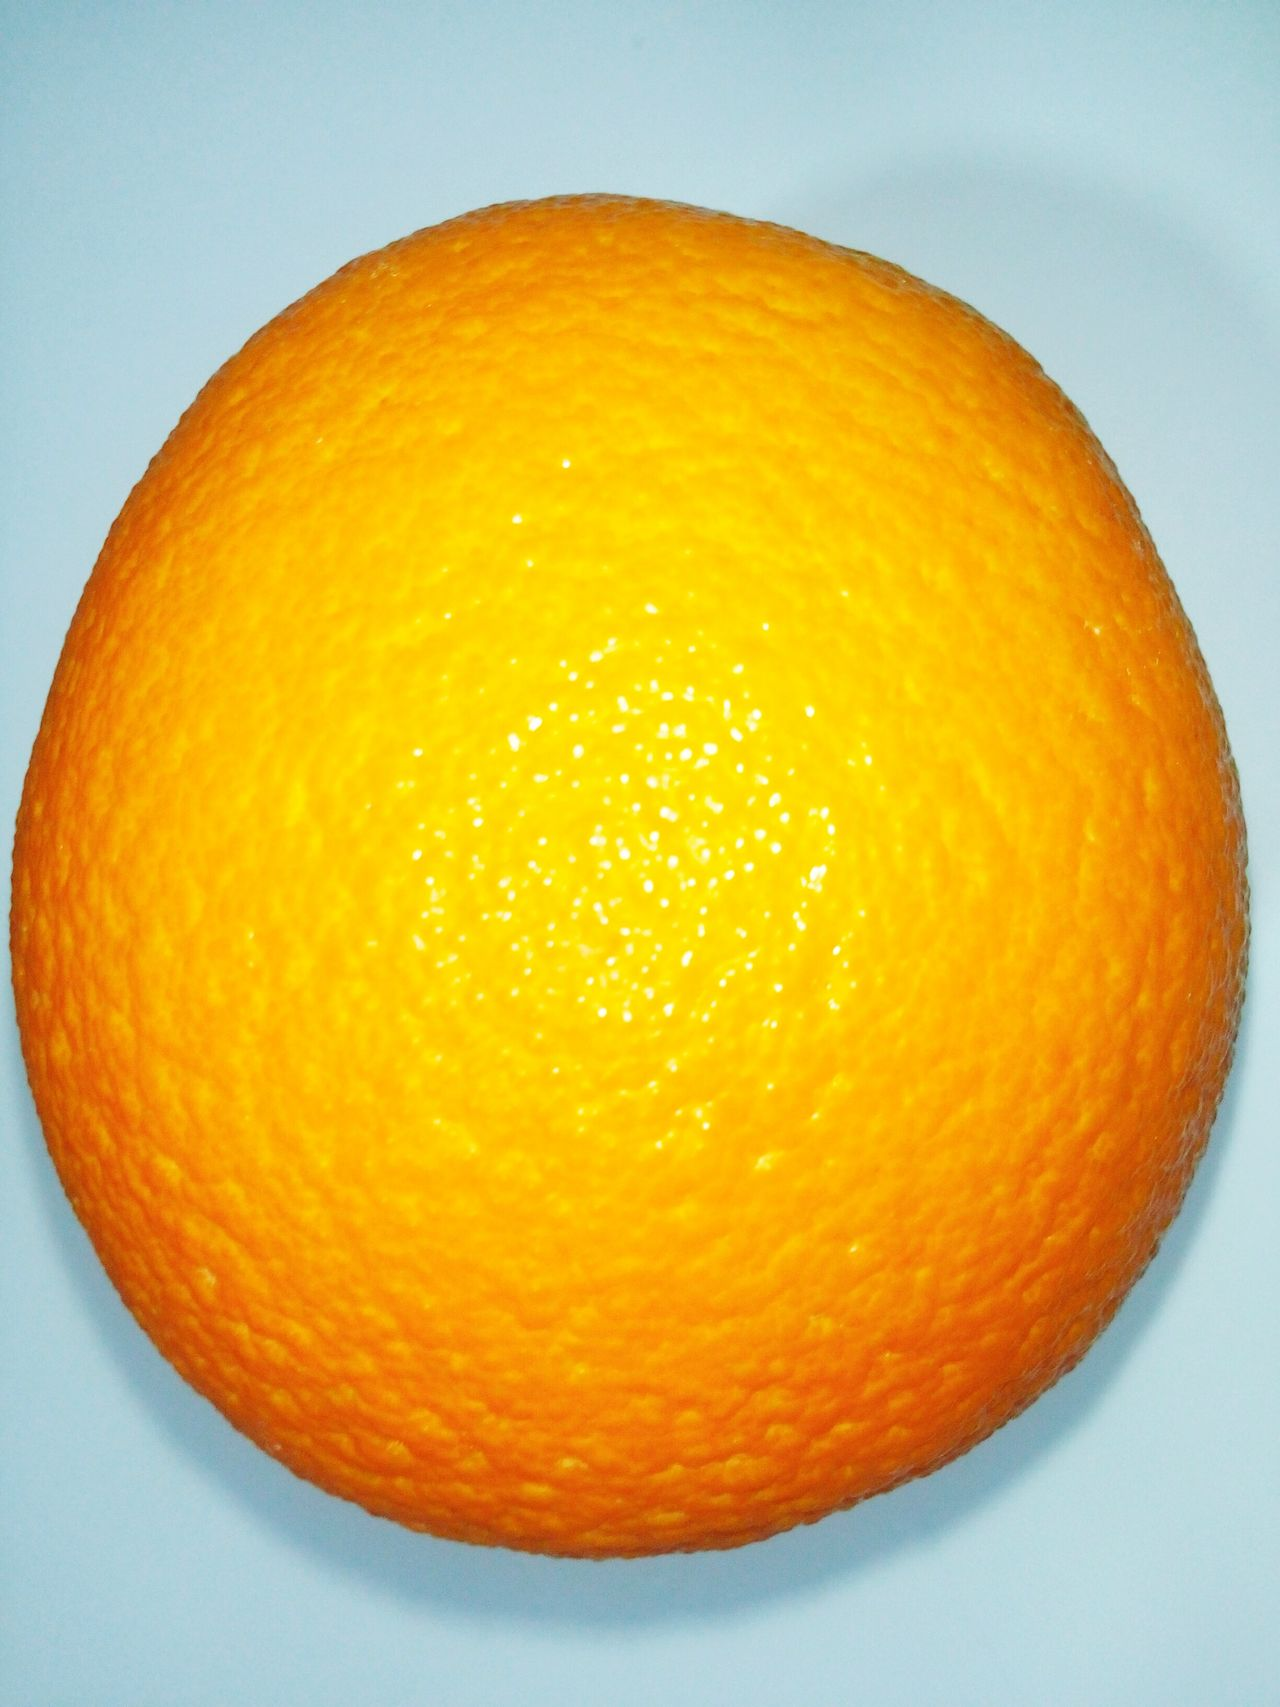 Top down shot of an orange Orange - Fruit Fruit Citrus Fruit Healthy Eating Orange Color Food And Drink Freshness Close-up Day Top Down Texture Summer Vitamin C Yellow Color EyeEmNewHere